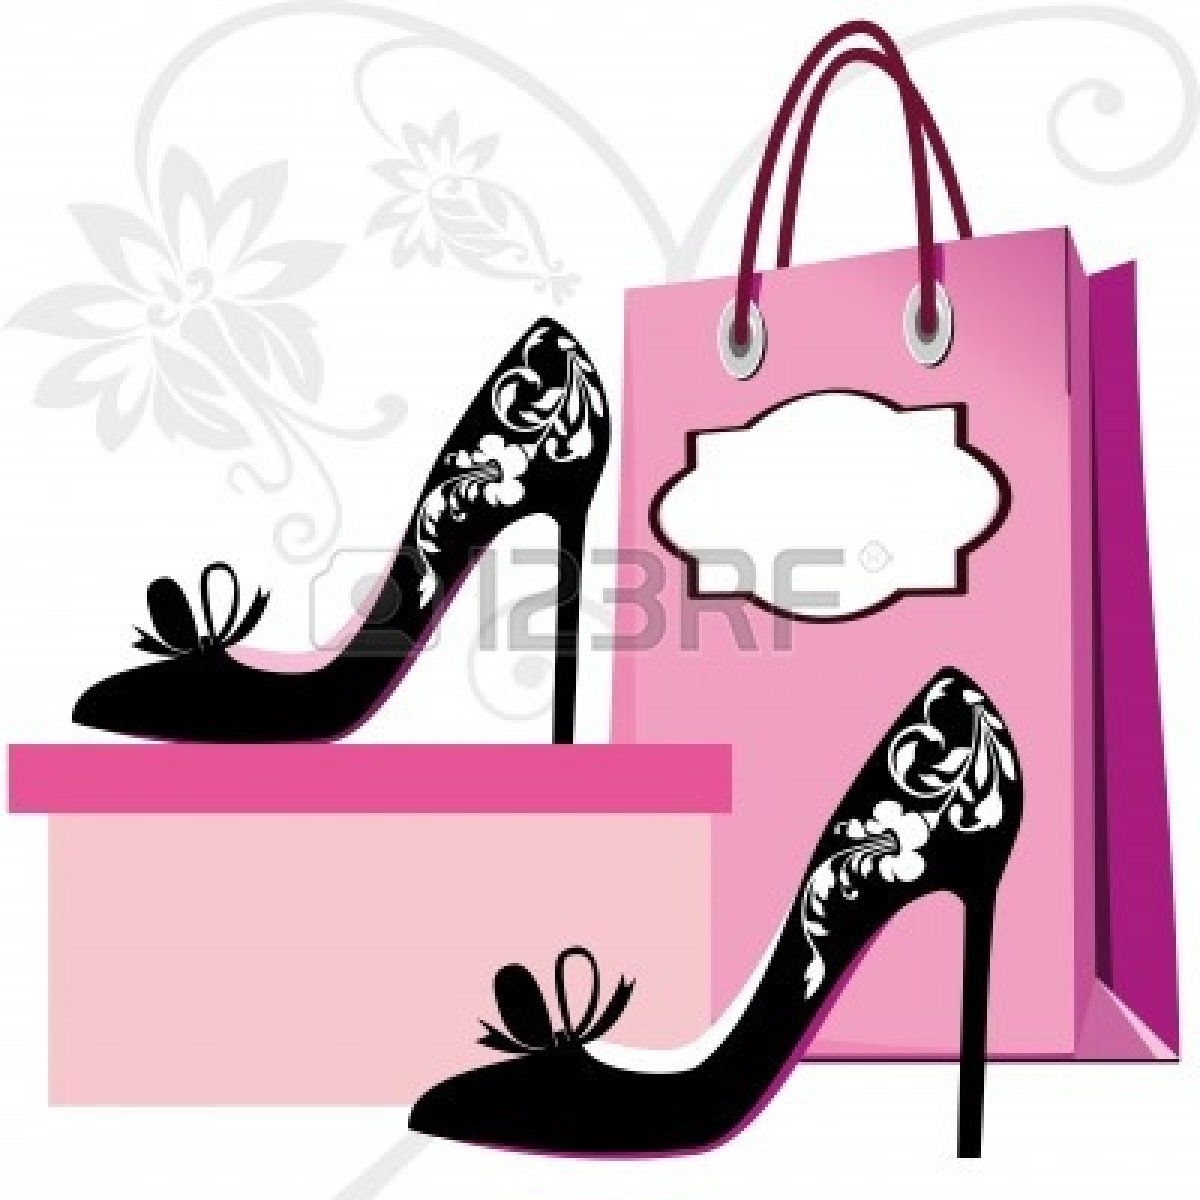 Heels clipart purse. Boutique silhouettes of women